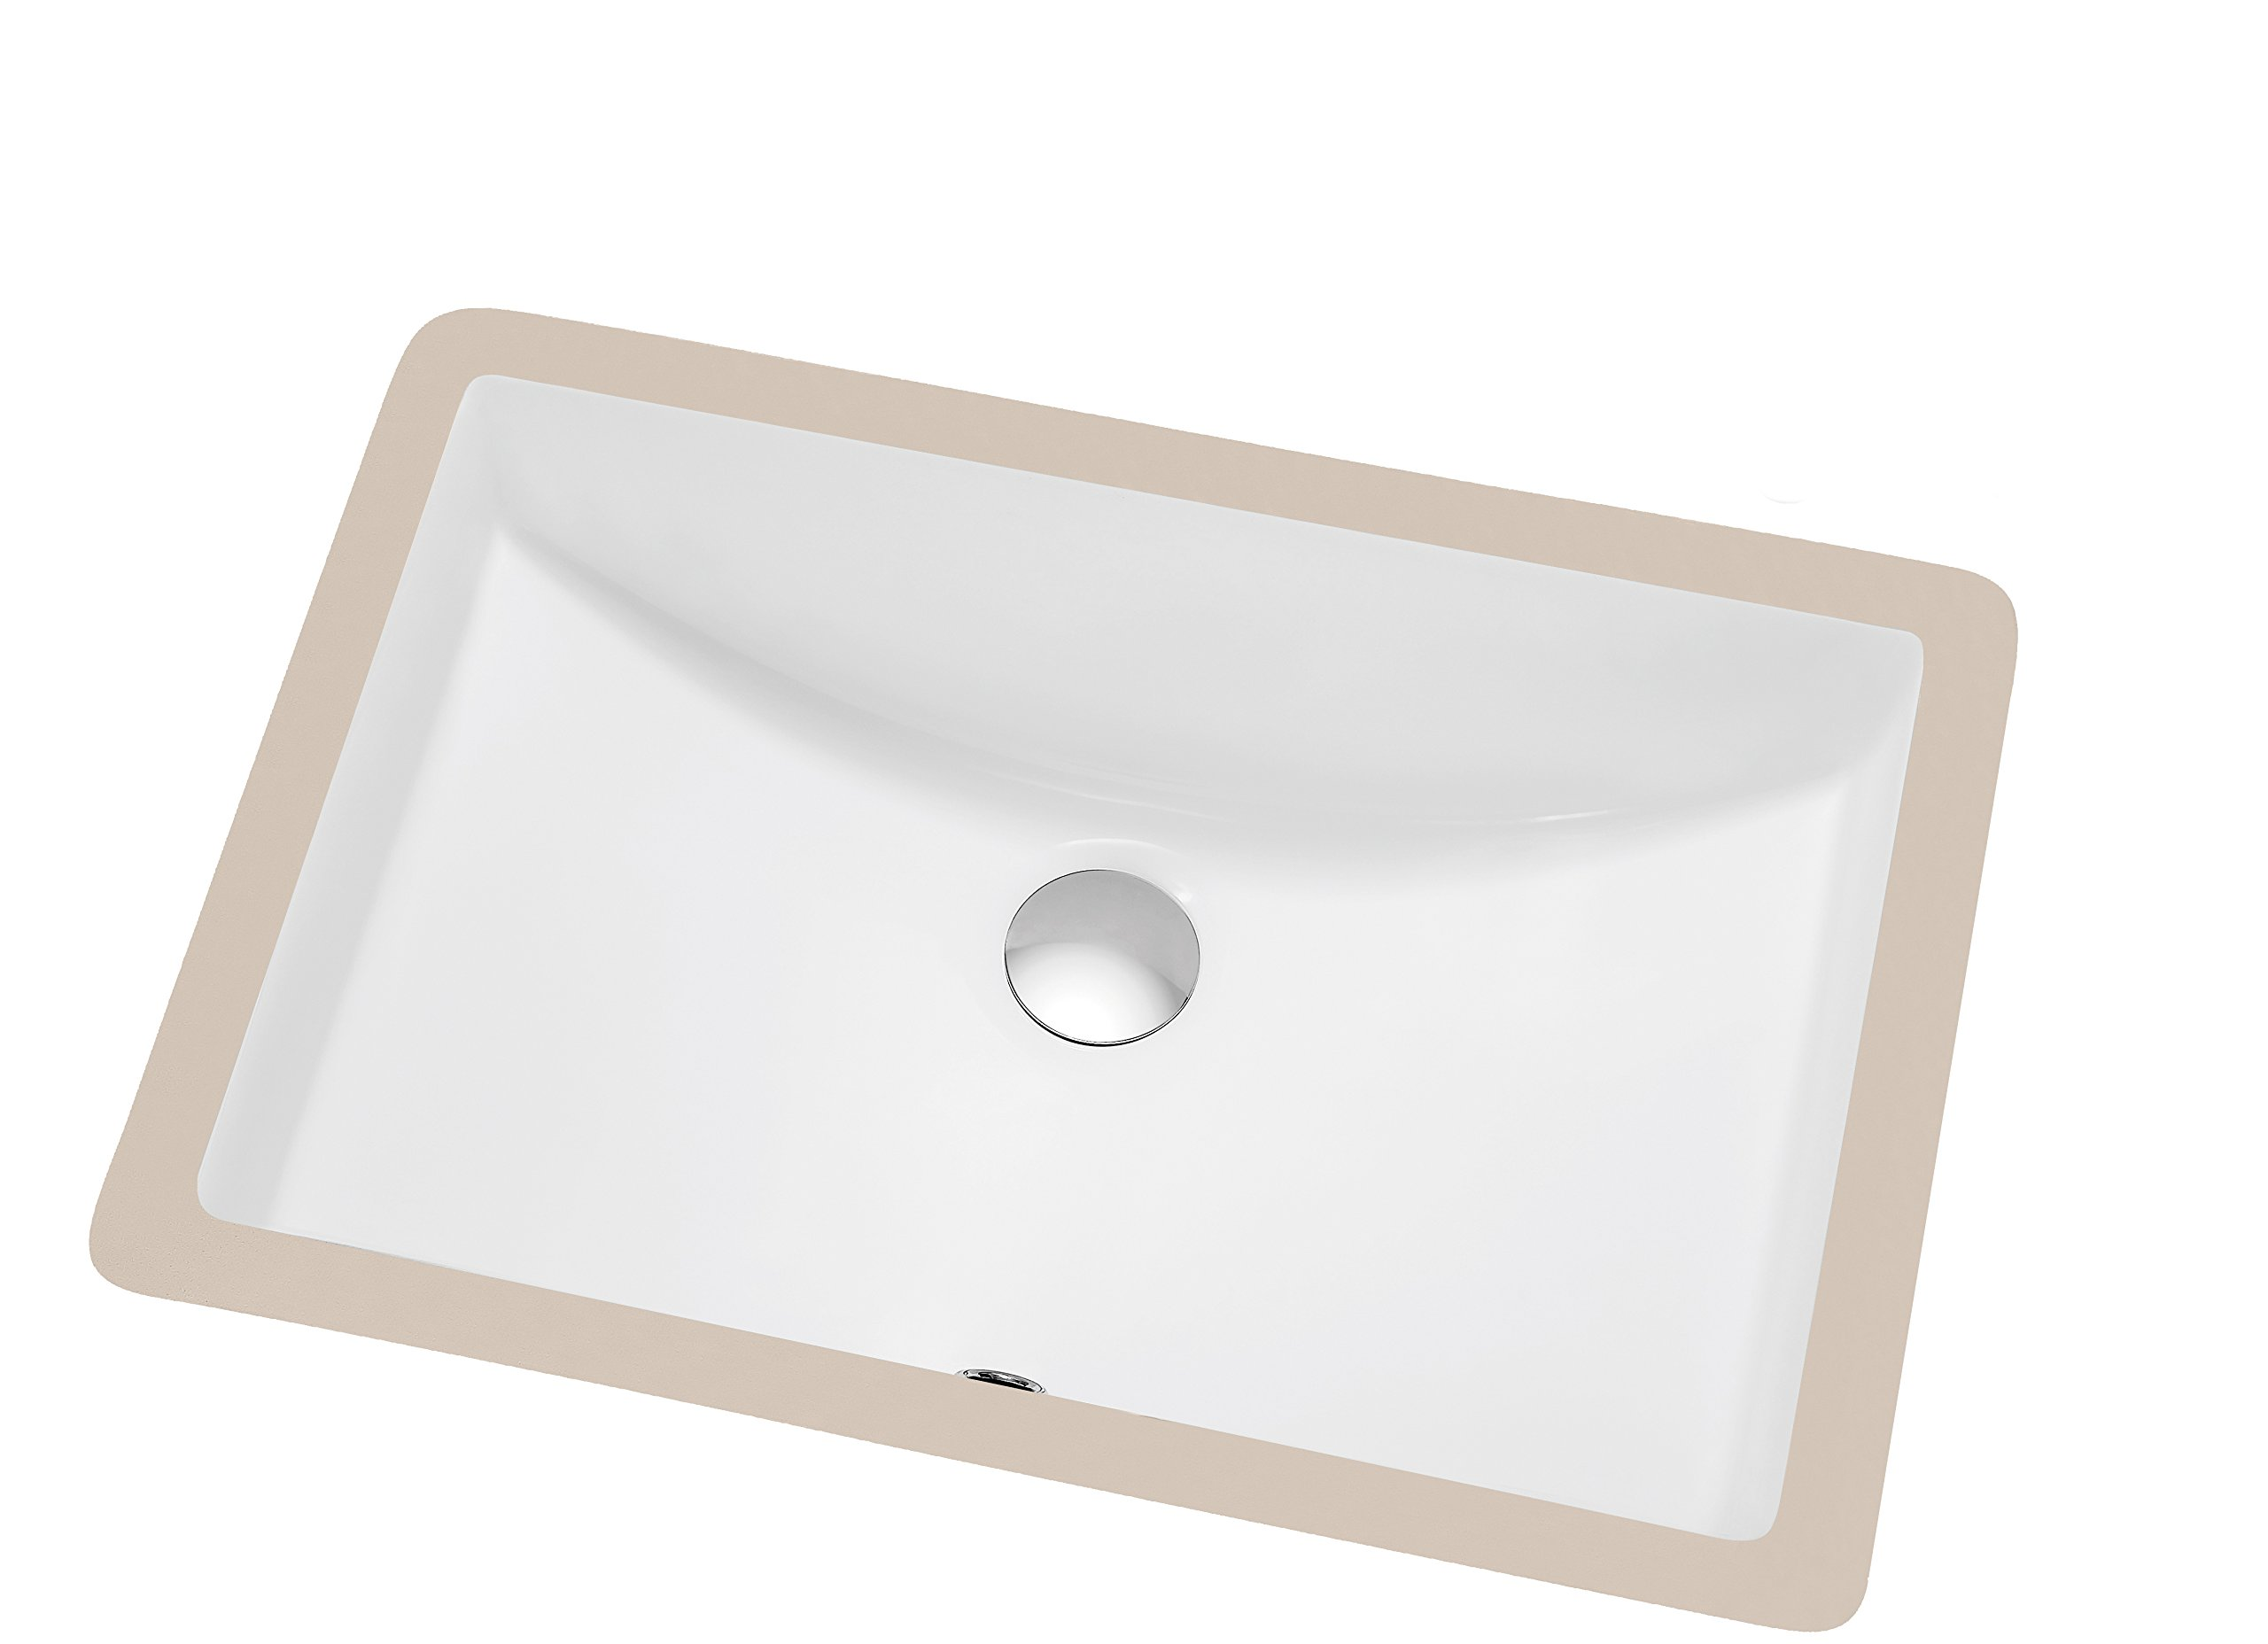 Contemporary Under Counter Rectangle Ceramic Basin with Overflow by Dawn